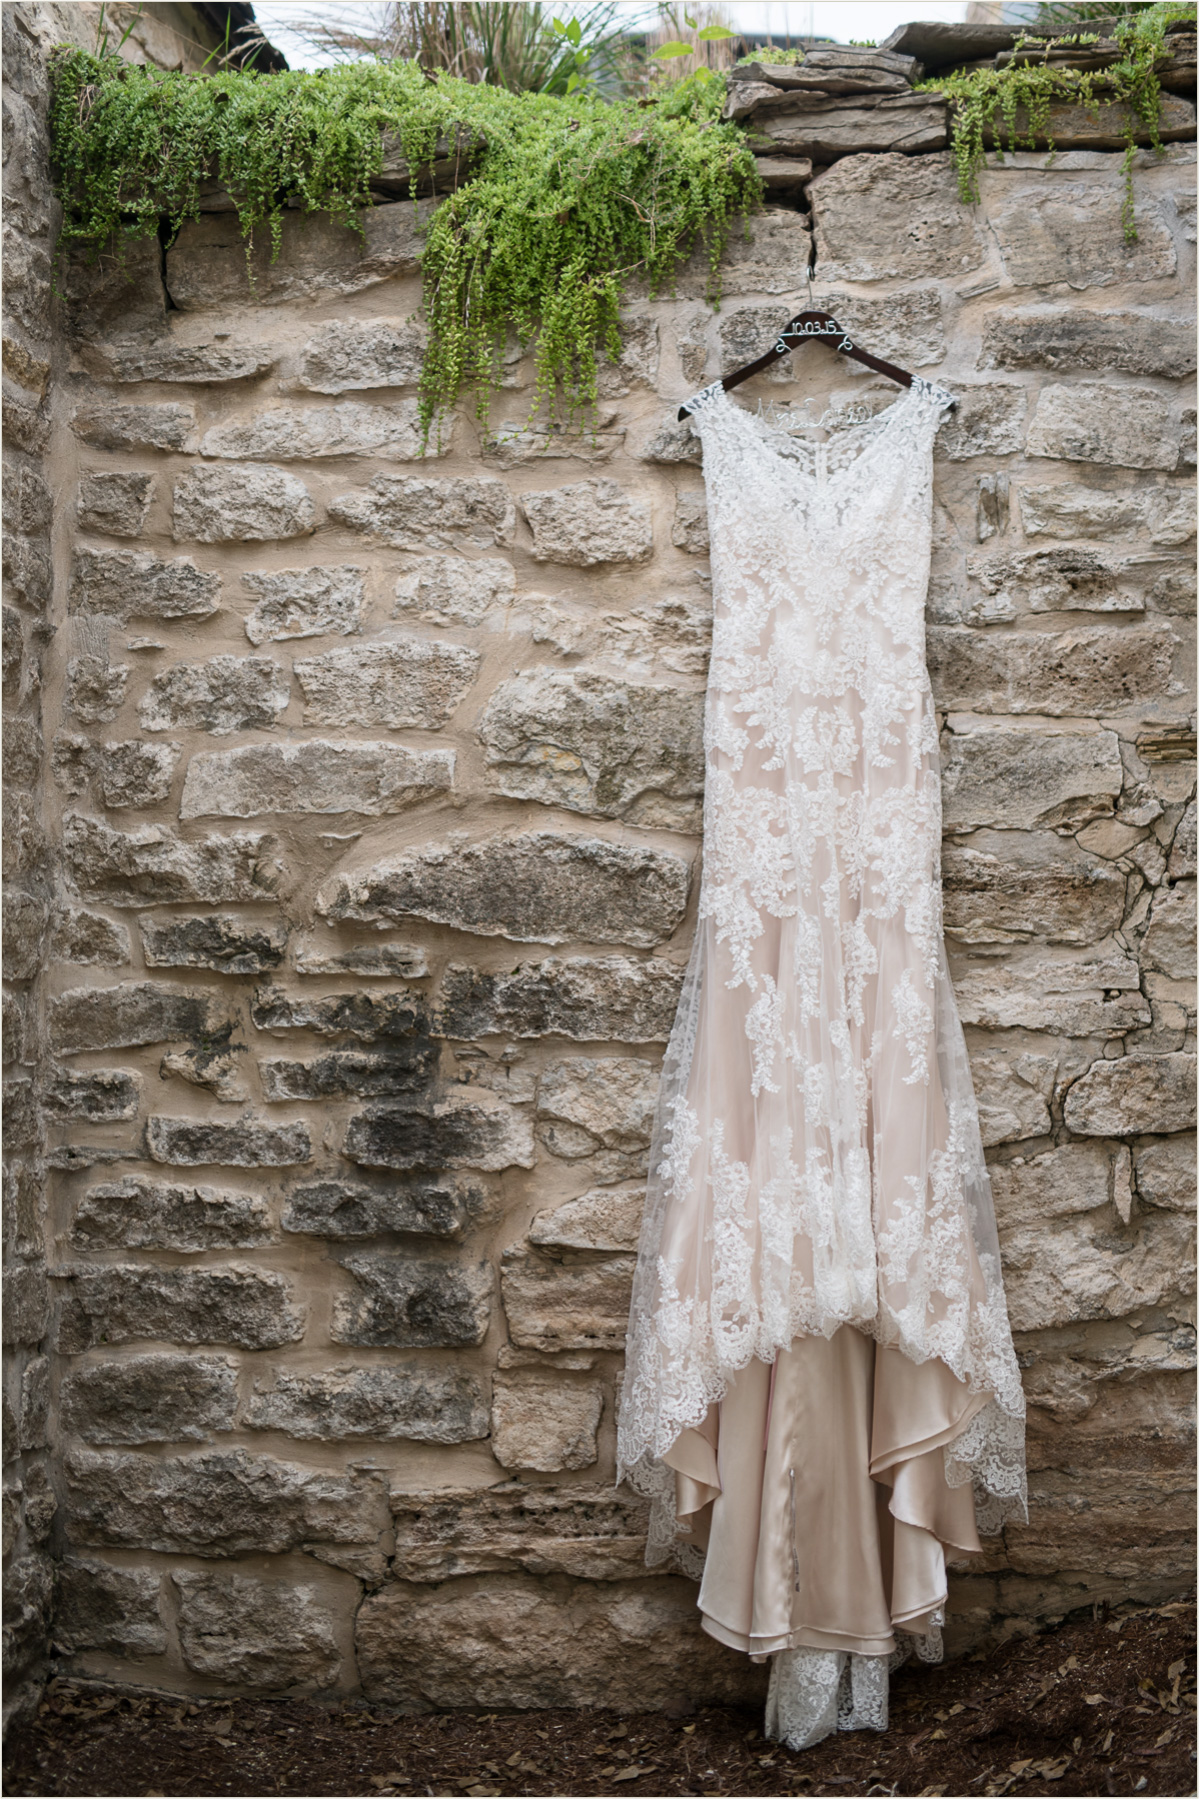 Lace Wedding Dress Hanging at Prairiewood Stone House